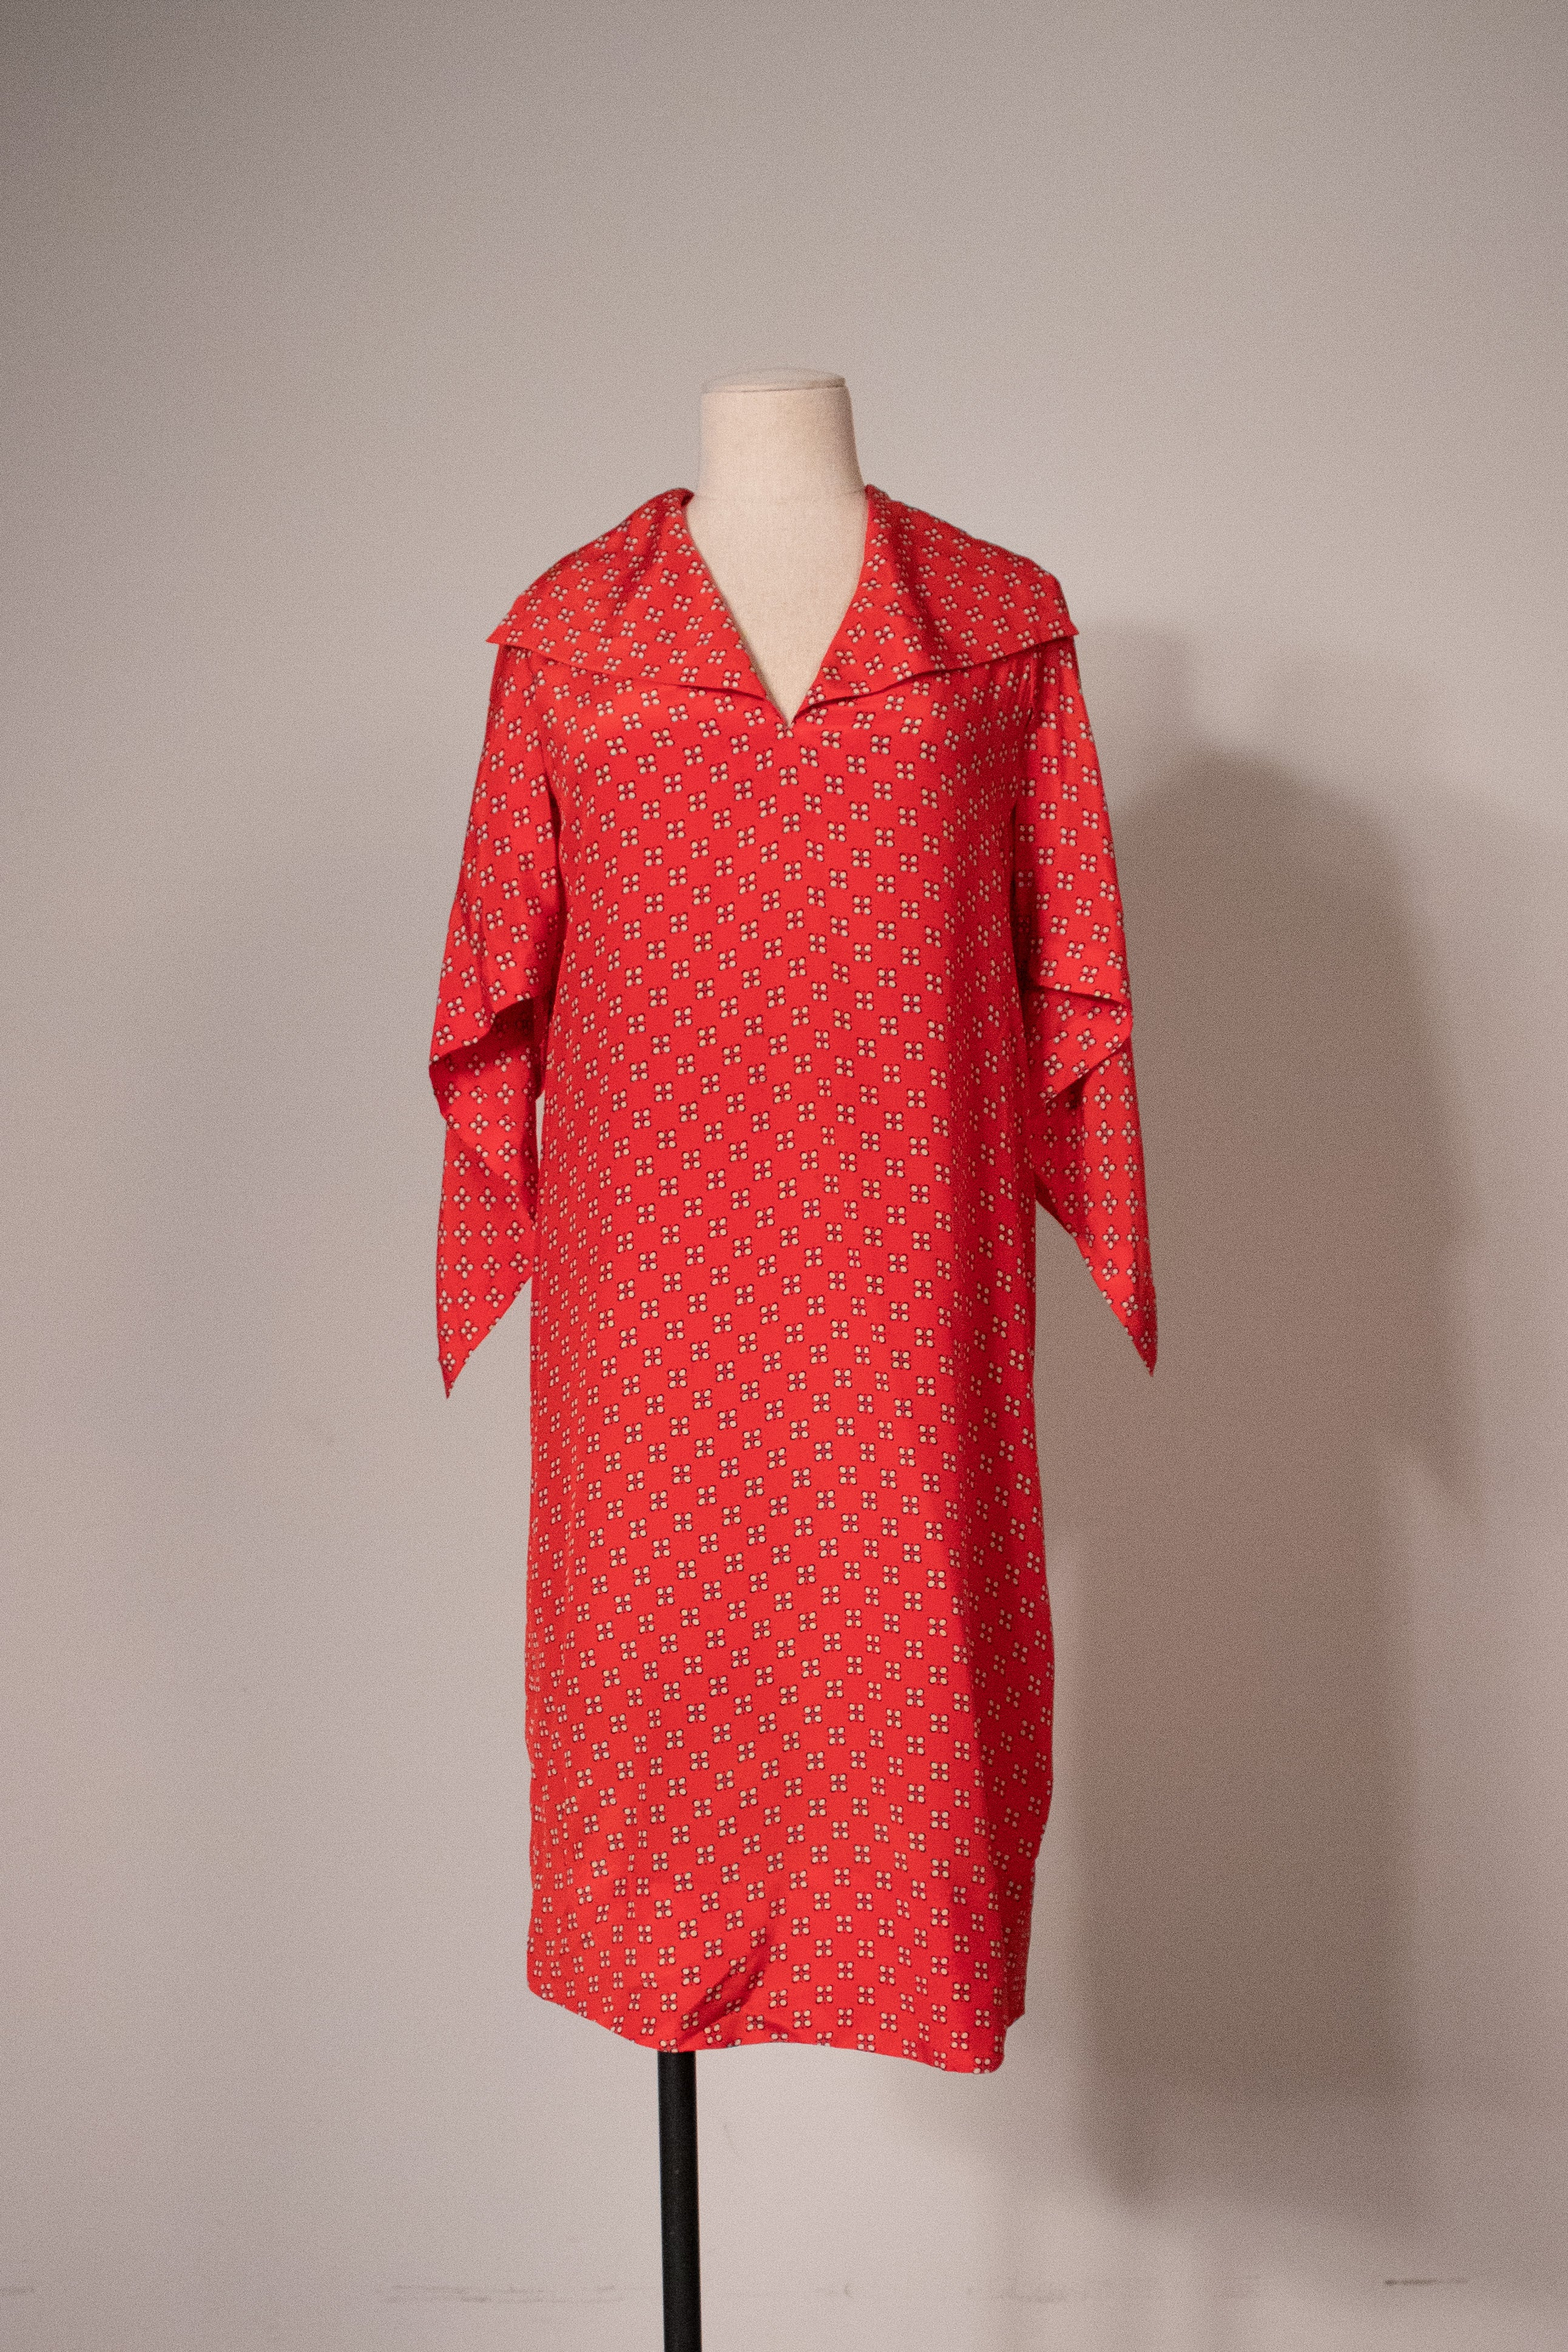 Givenchy Nouvelle Boutique red printed silk smock dress with kerchief details